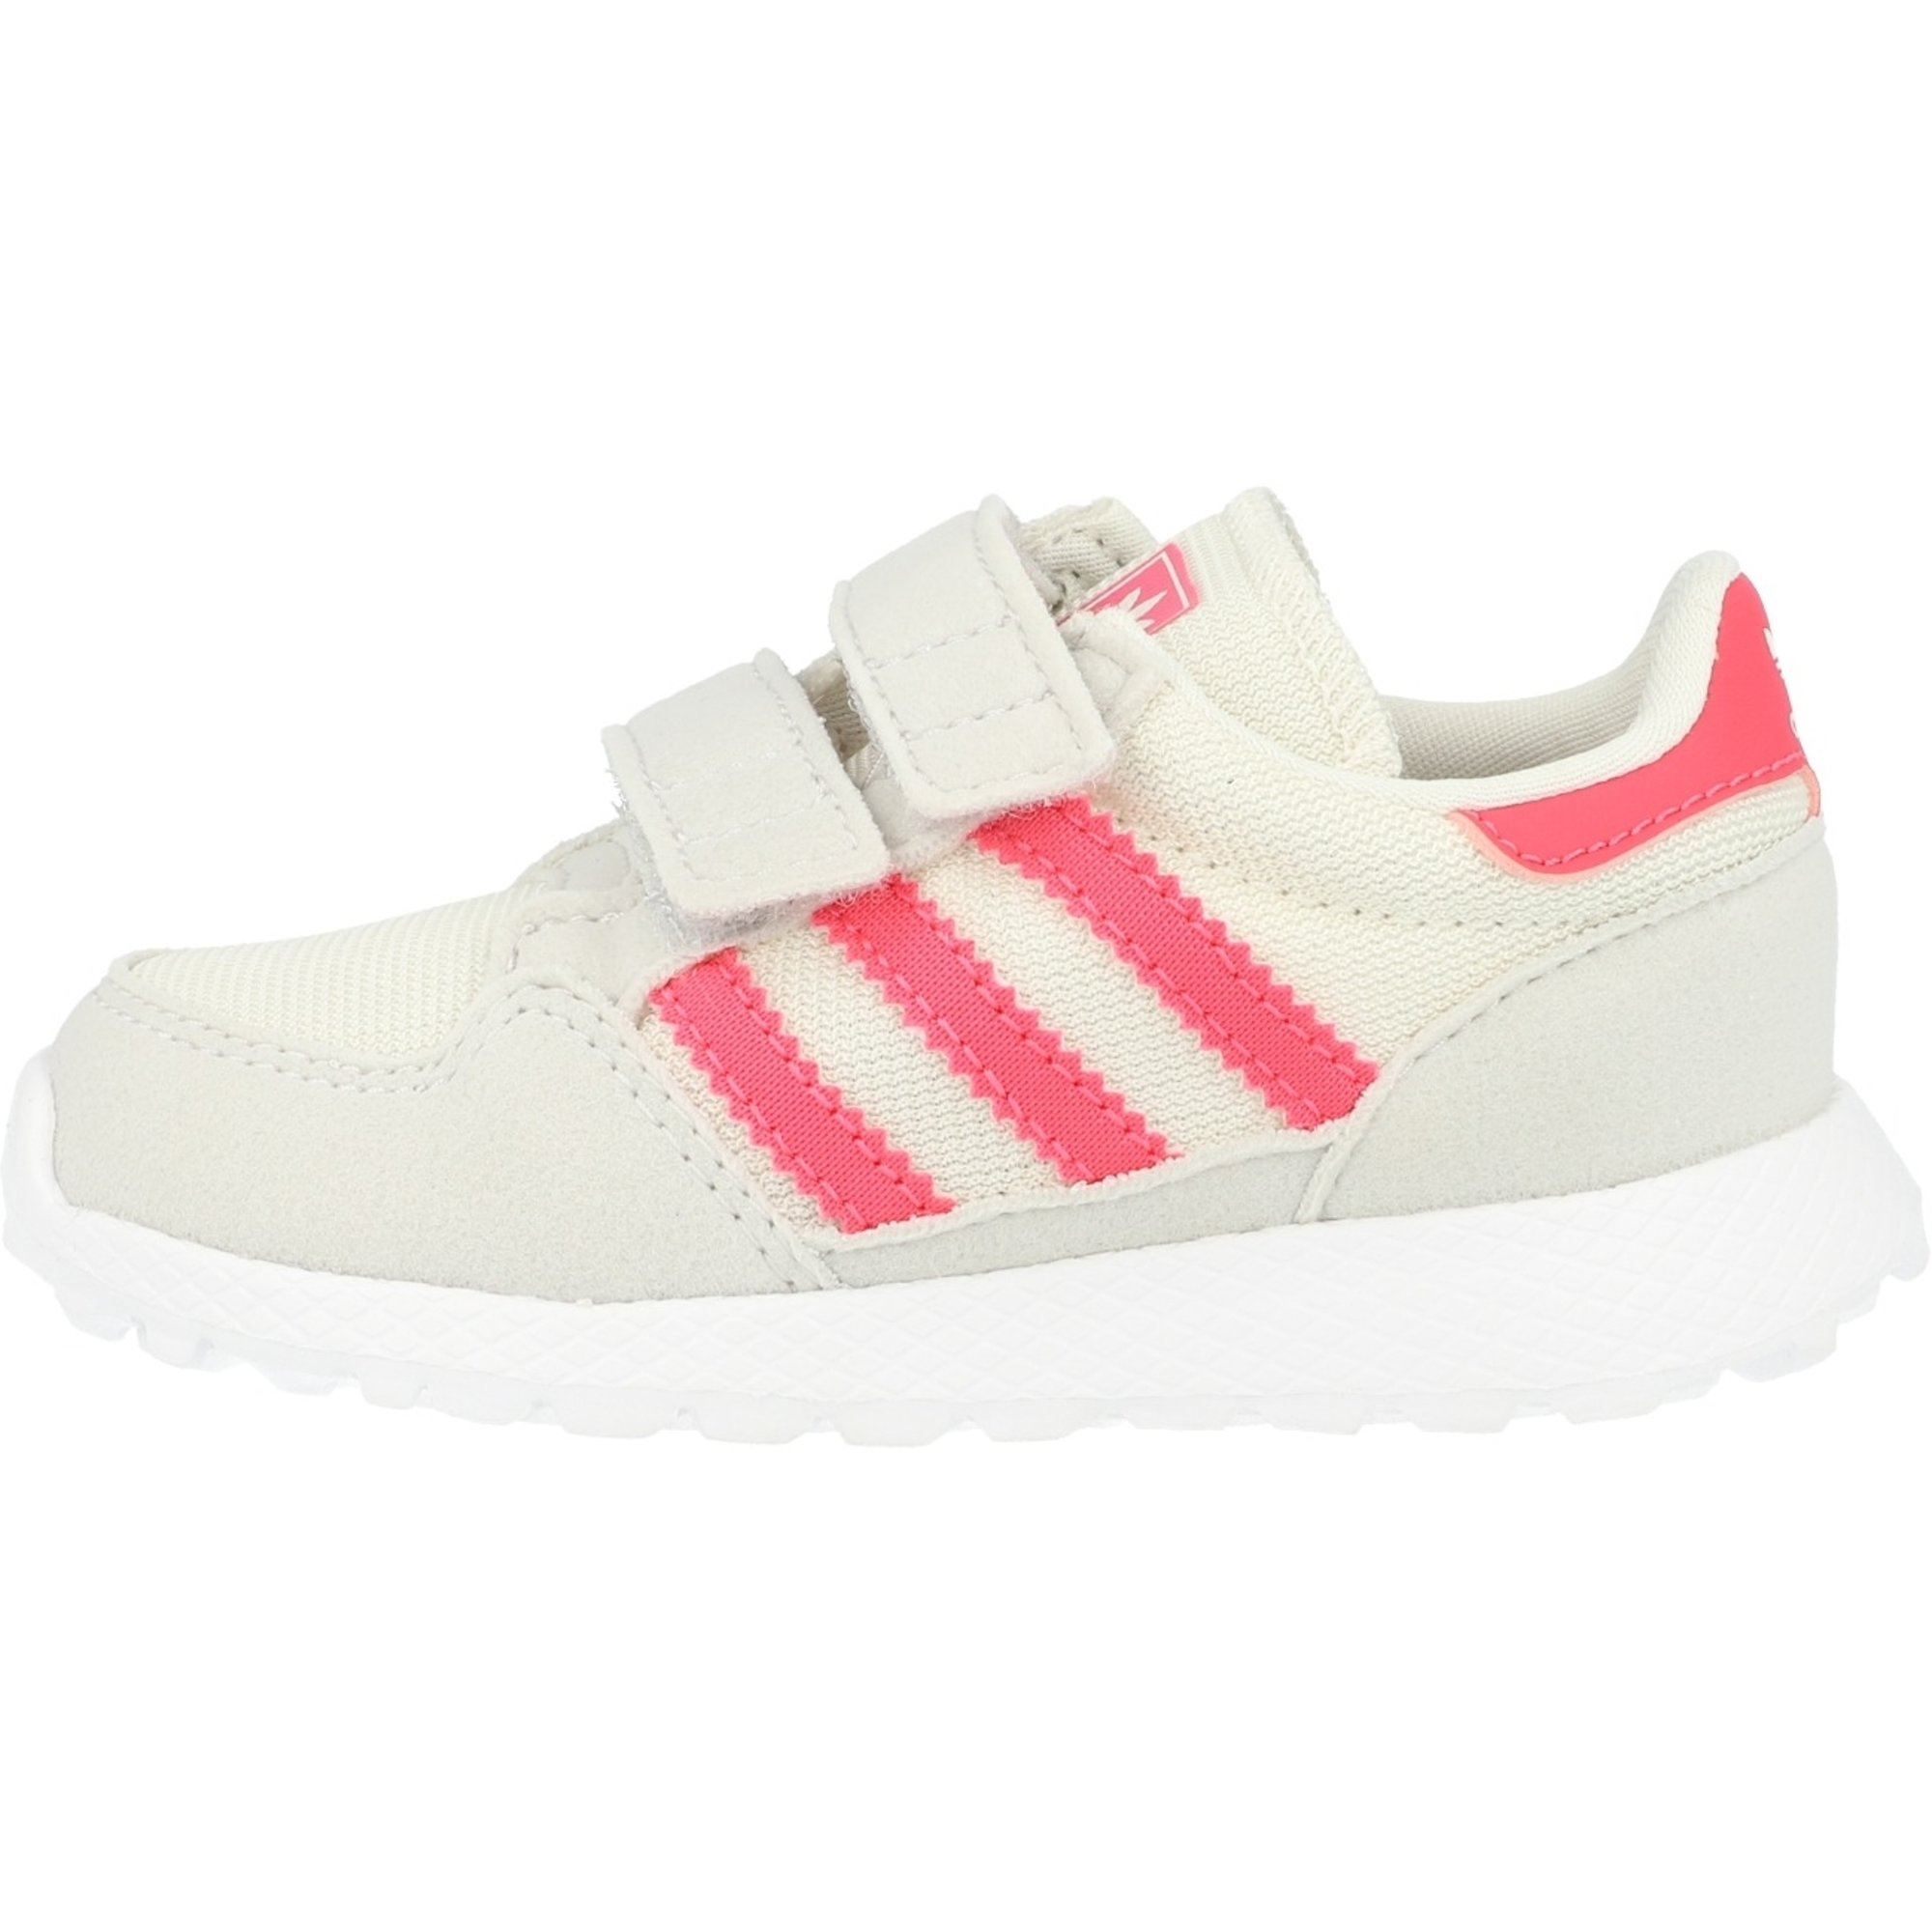 adidas Originals Forest Grove CF I Chalk WhiteReal Pink Synthetic Suede Infant